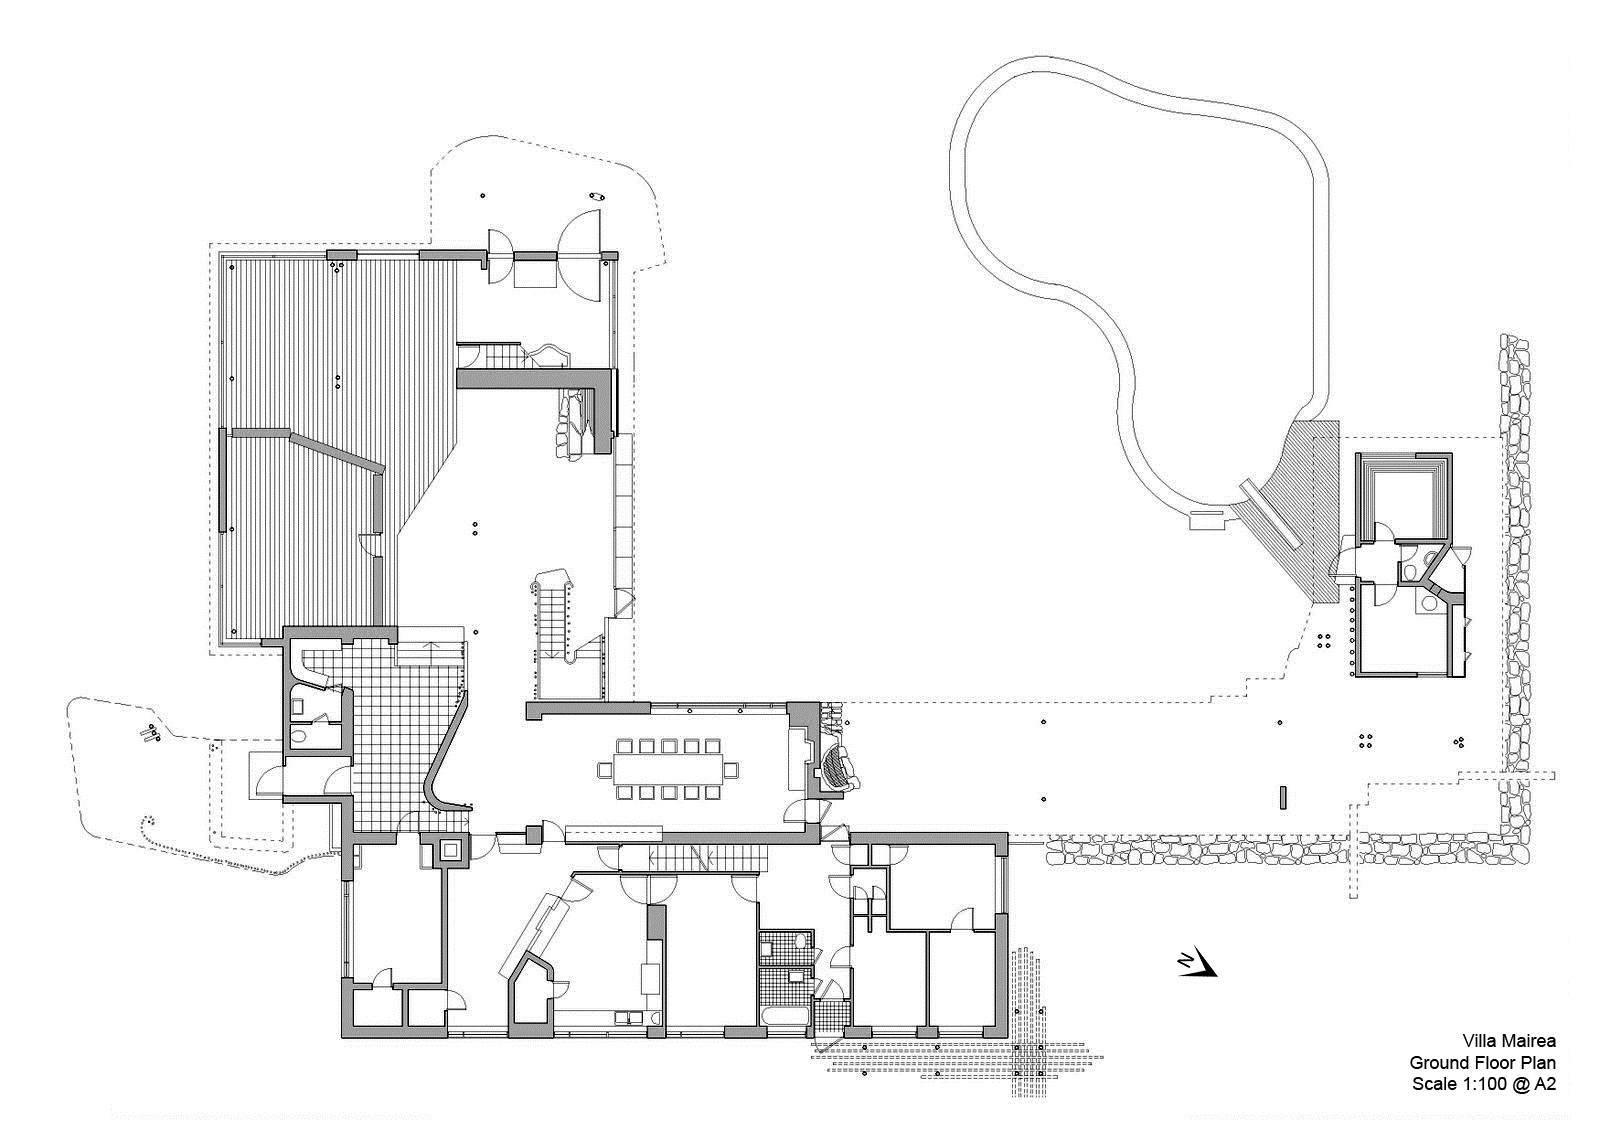 Design Studio 3: Villa Mairea Final Ground Floor plans